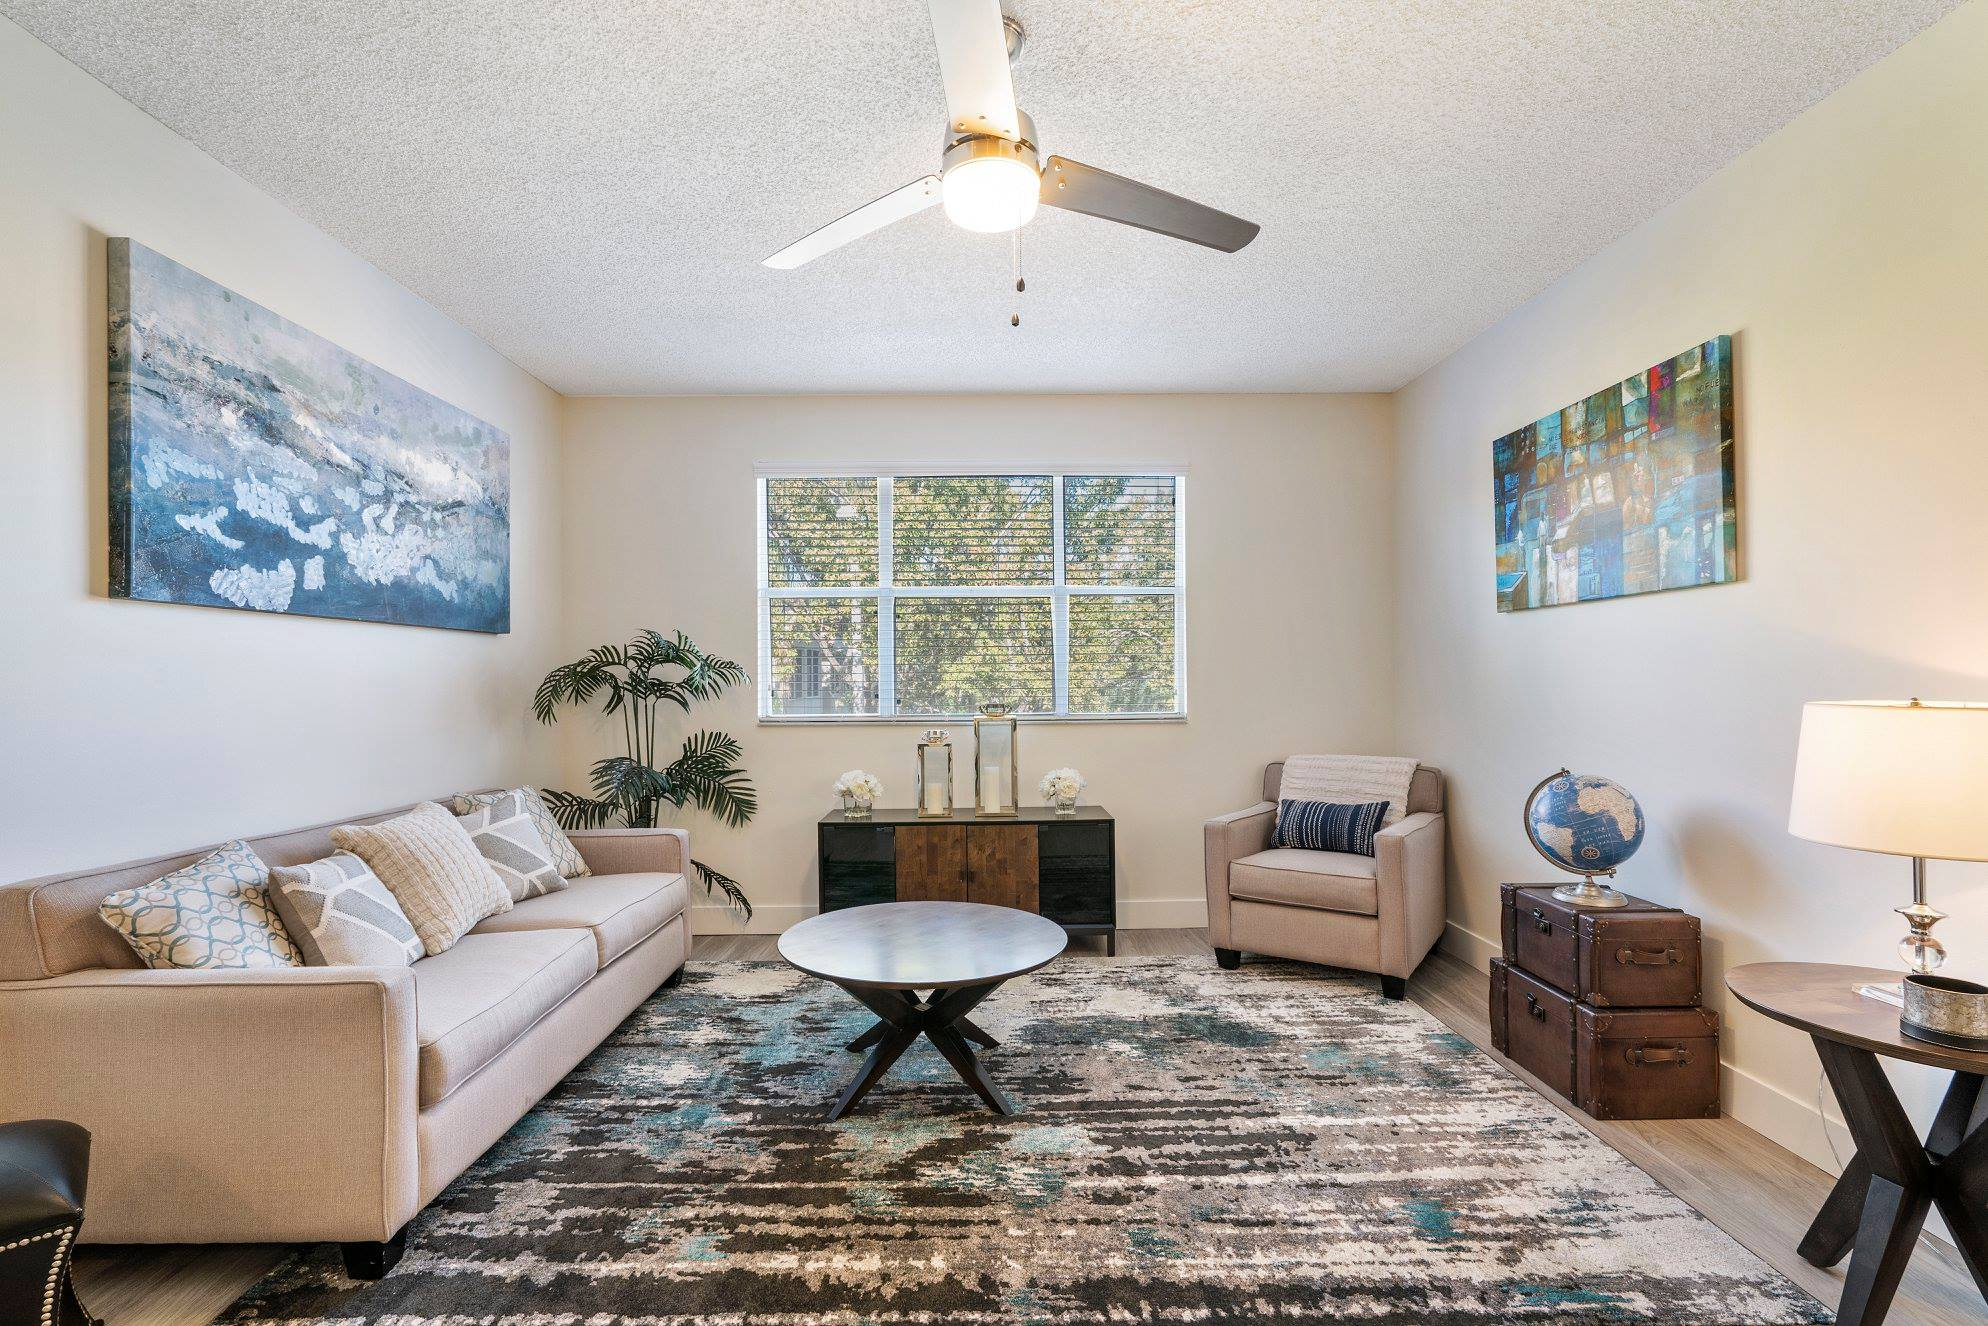 Living Room with Ceiling Fan at Windsor Castle Apartments in Coral Springs, Florida